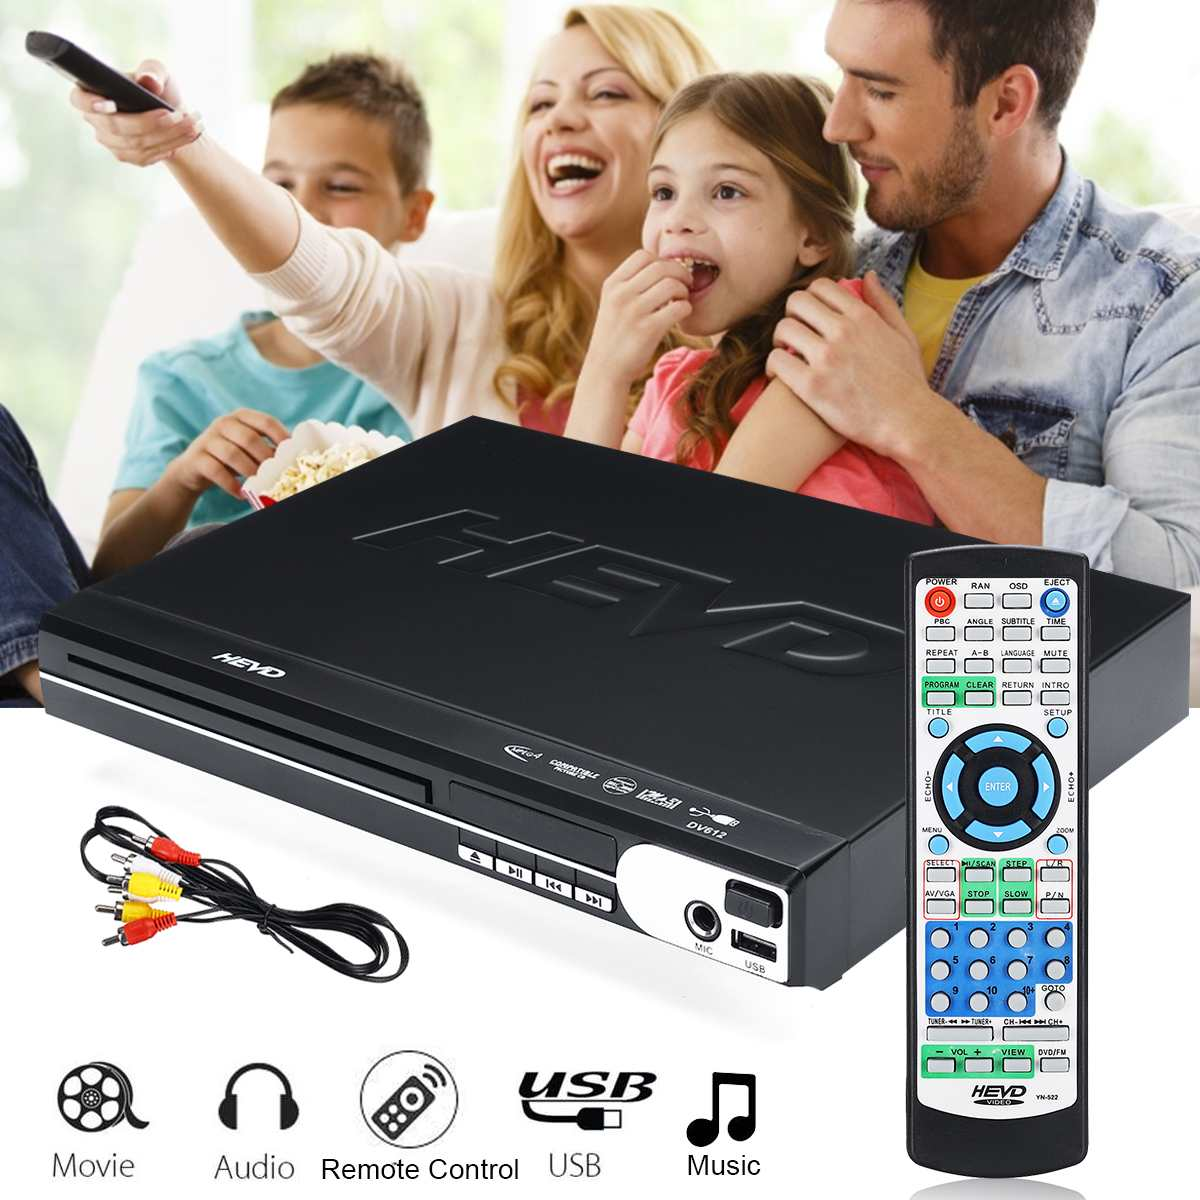 DVD Player Compact Multi Region Reader Full HD USB Mic Port With Remote Control 110-240V 50-60Hz Plug and Play Black PlasticDVD Player Compact Multi Region Reader Full HD USB Mic Port With Remote Control 110-240V 50-60Hz Plug and Play Black Plastic